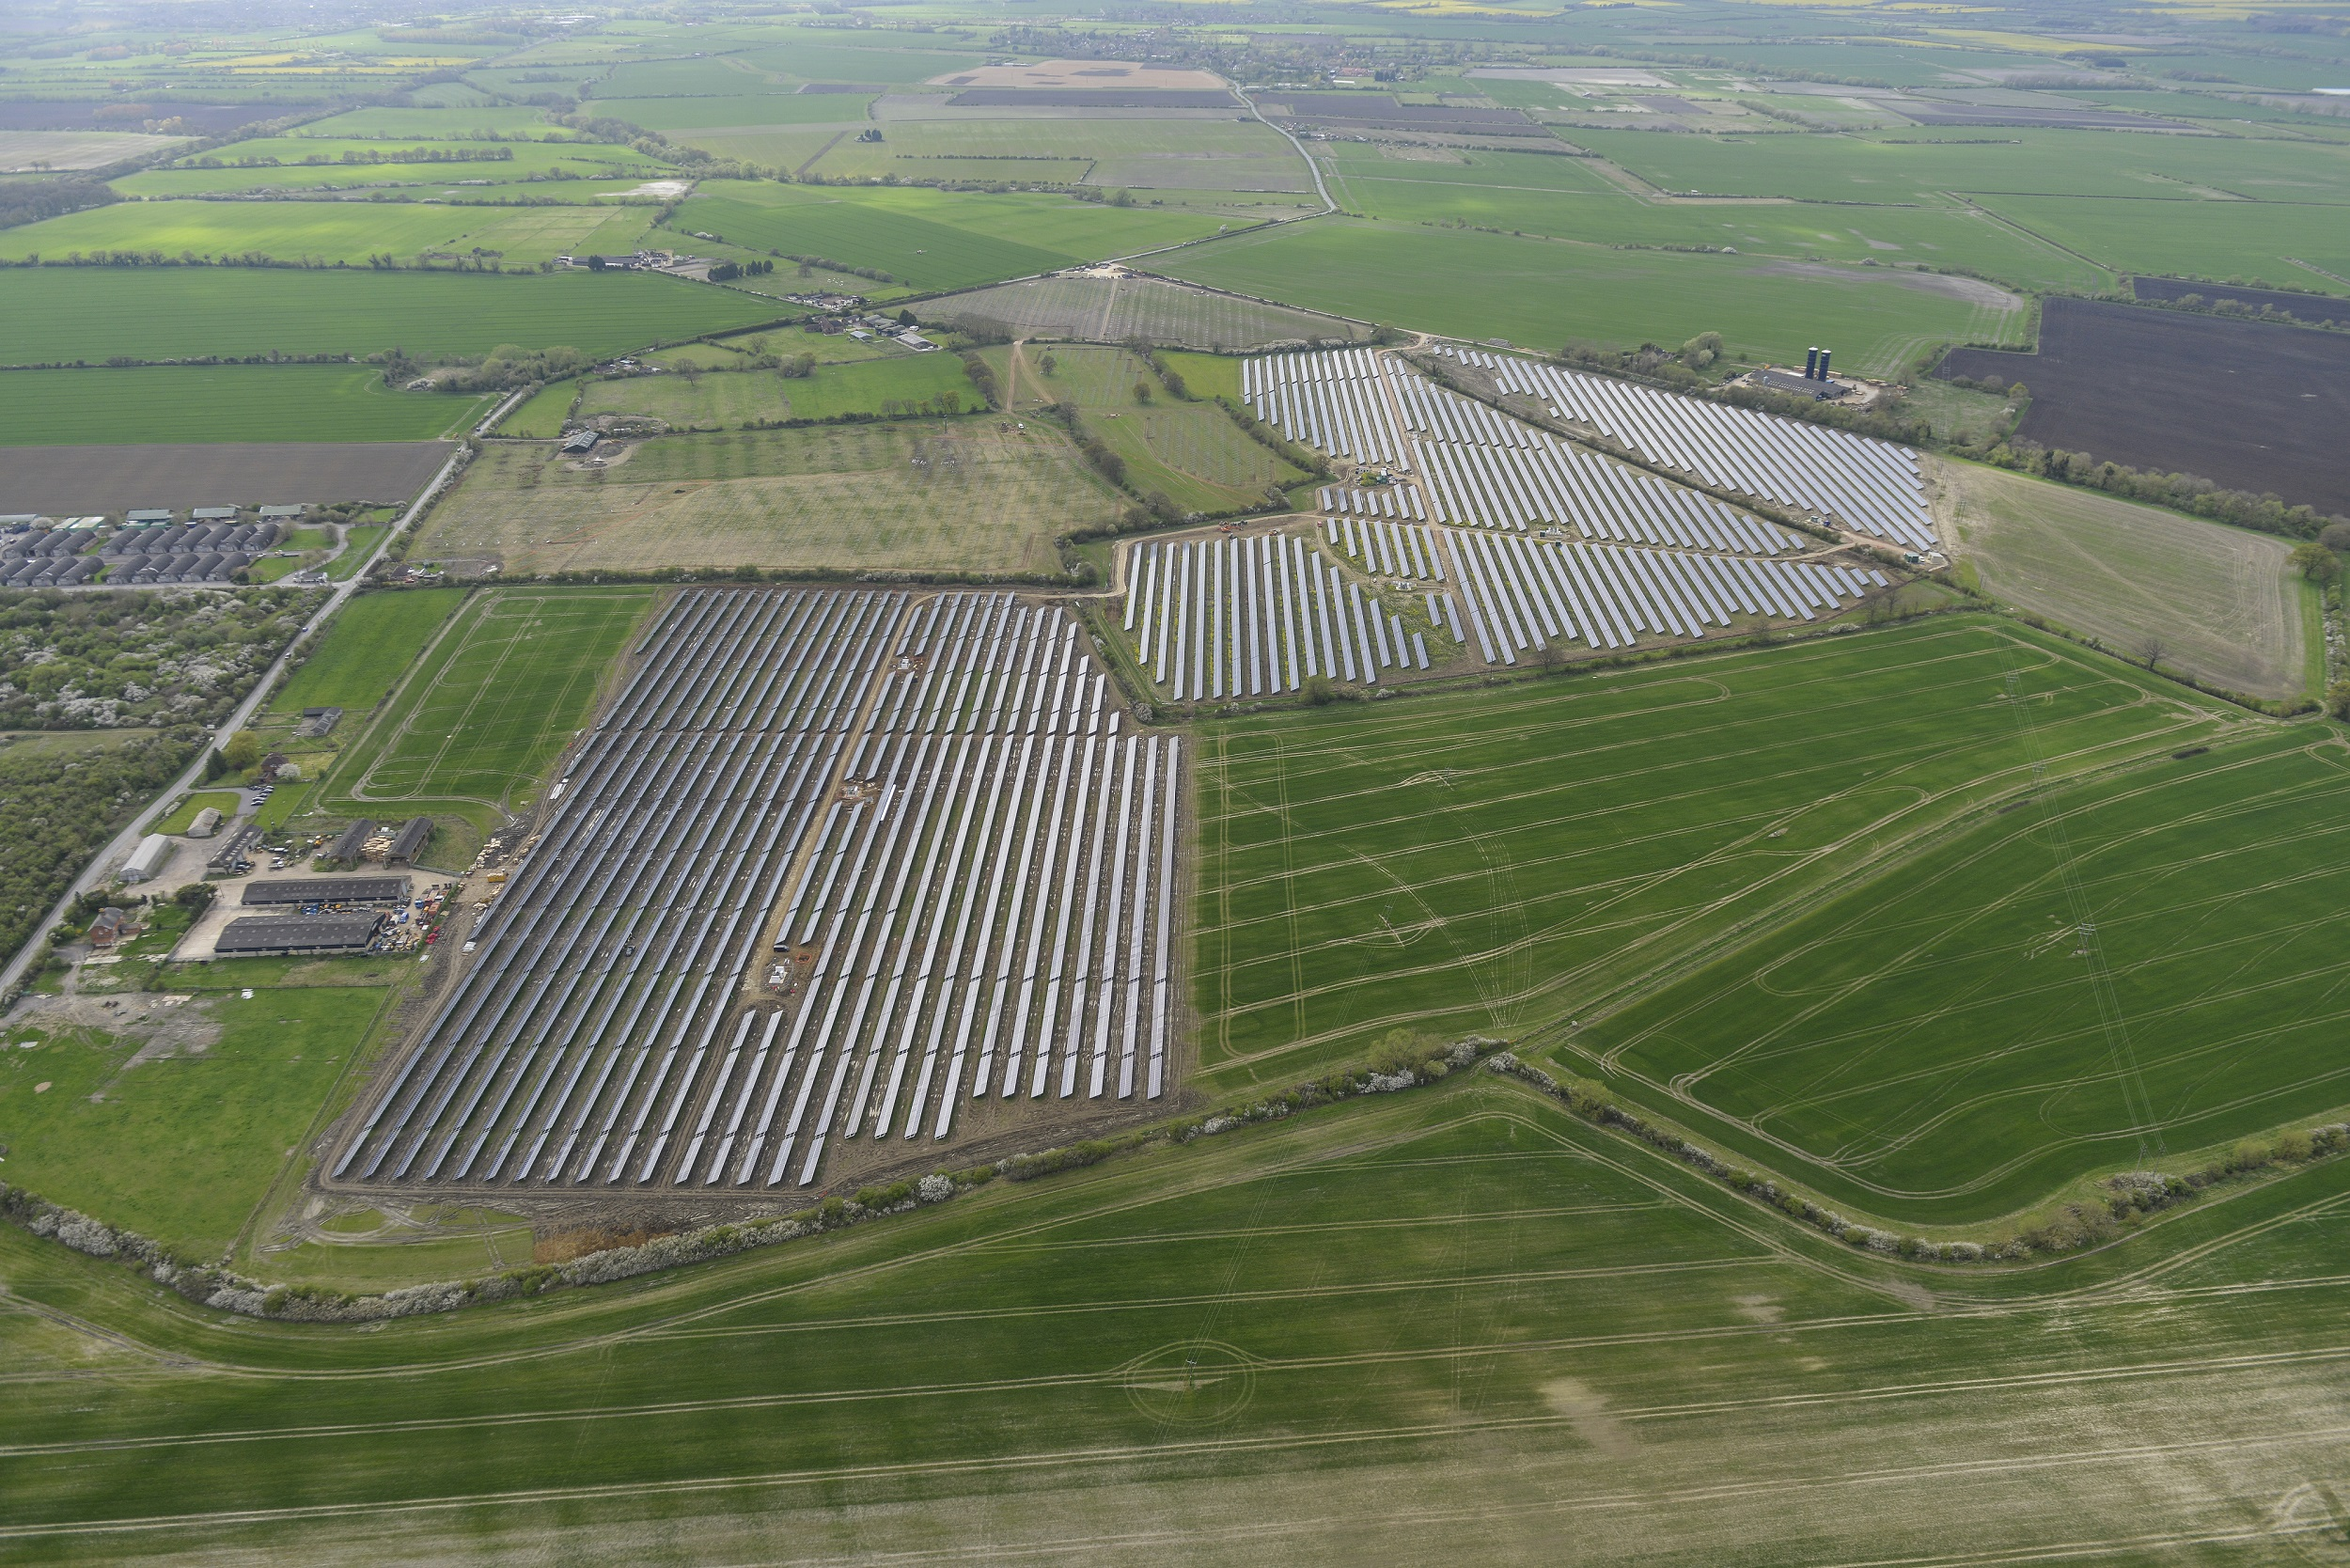 Solar park investments